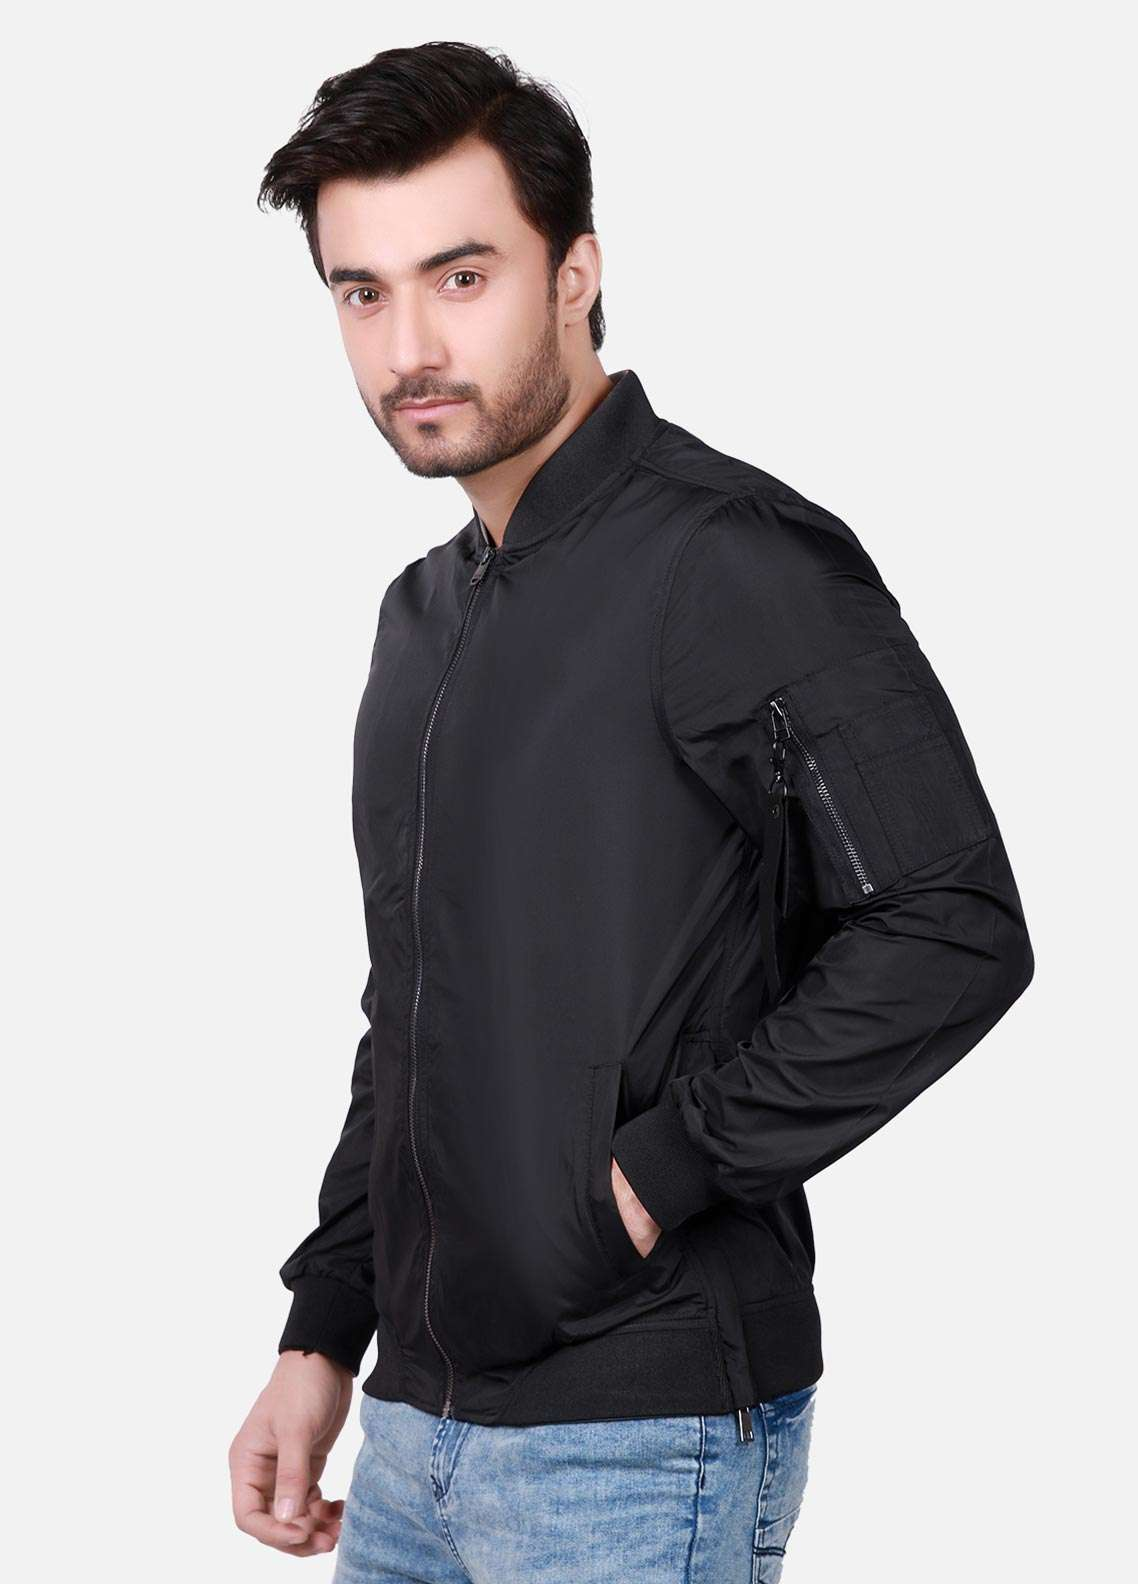 Furor Cotton Winter Jackets for Men - Black 039057